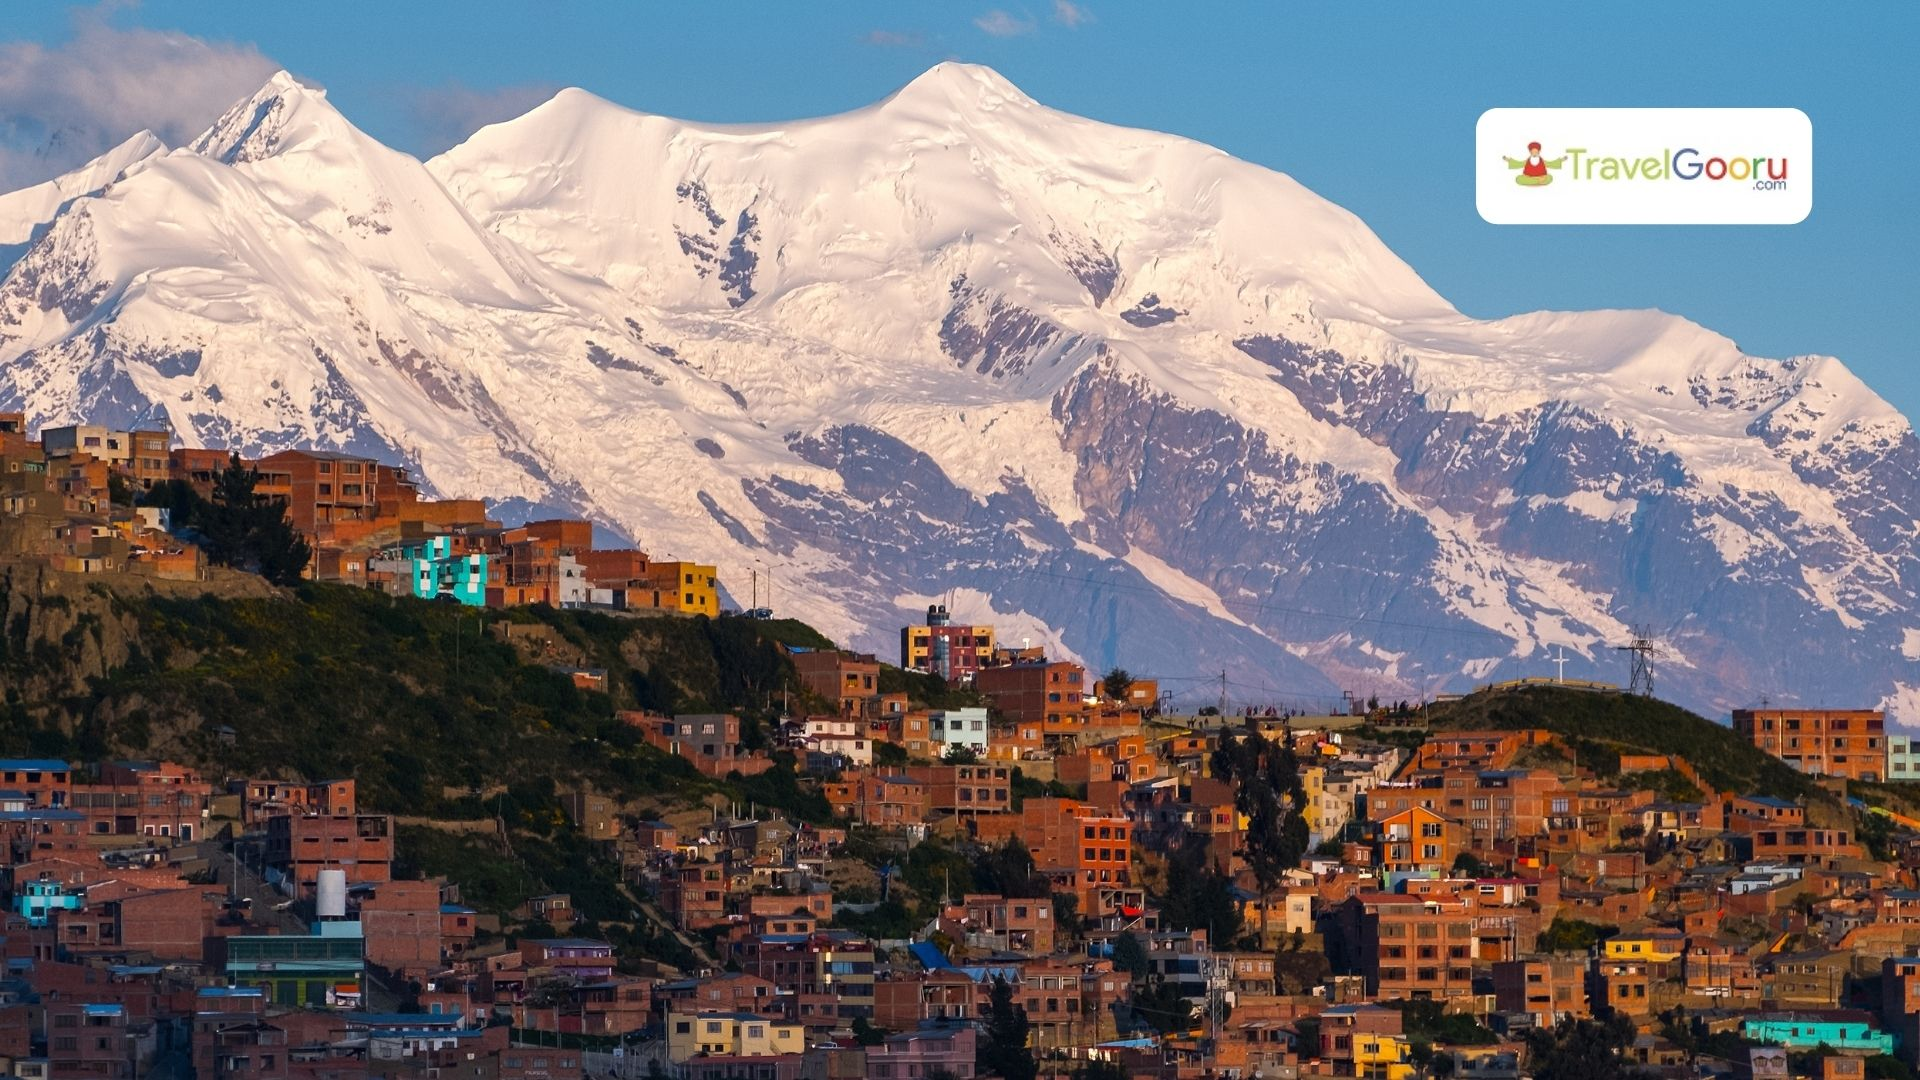 18 - Top 5 Countries You Should Visit in South America in 2021